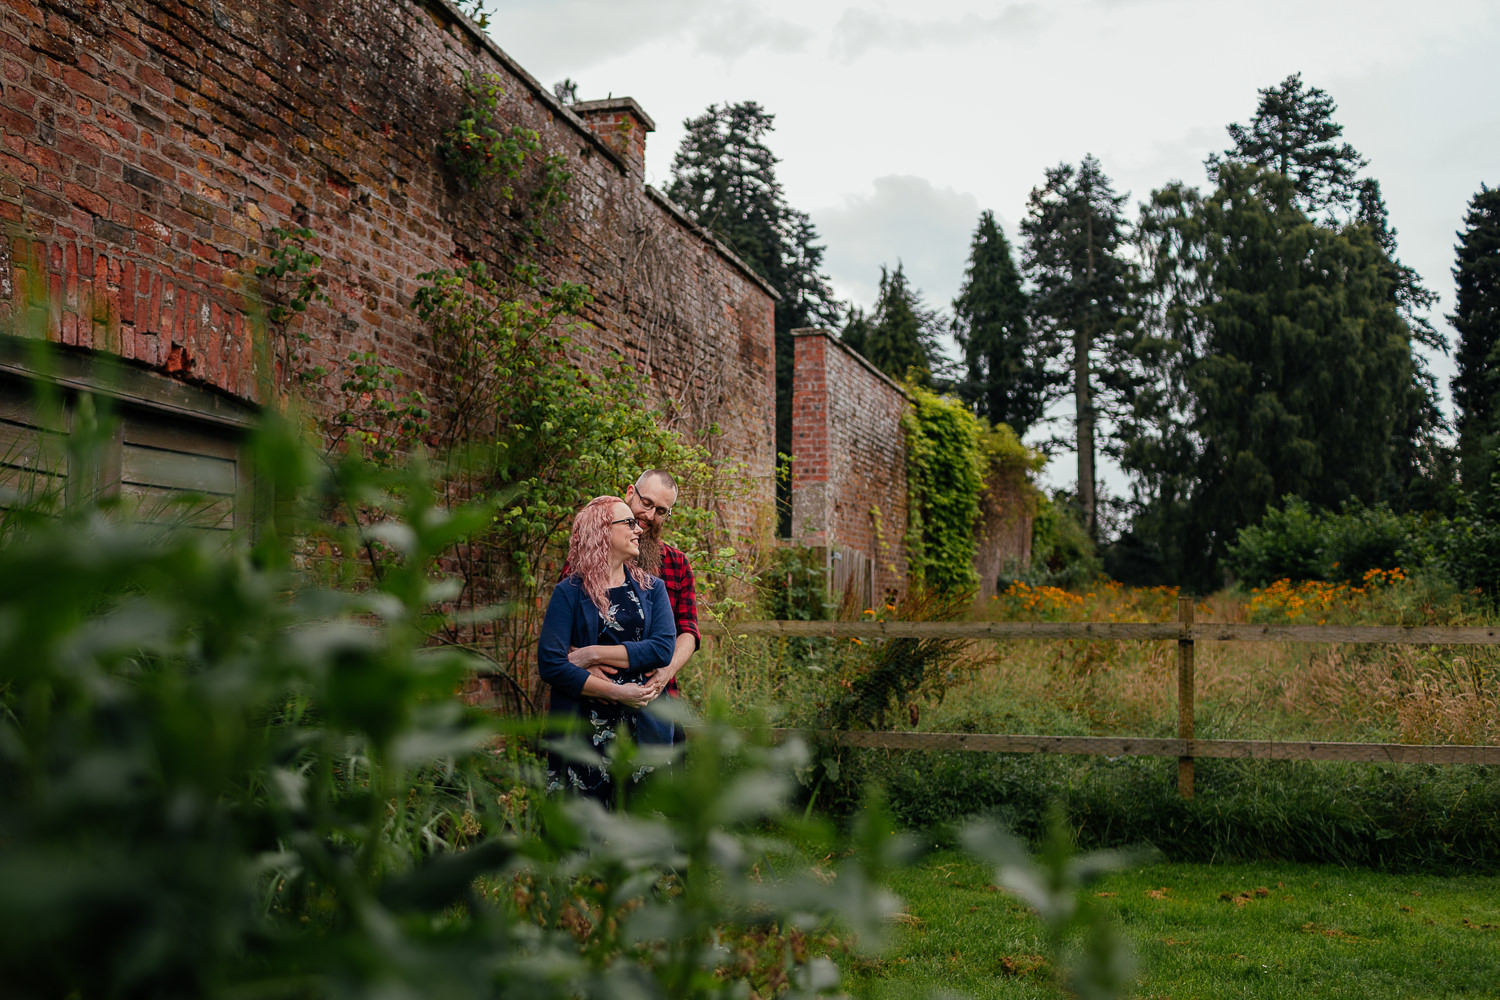 Perth Scone palace couples shoot in walled garden